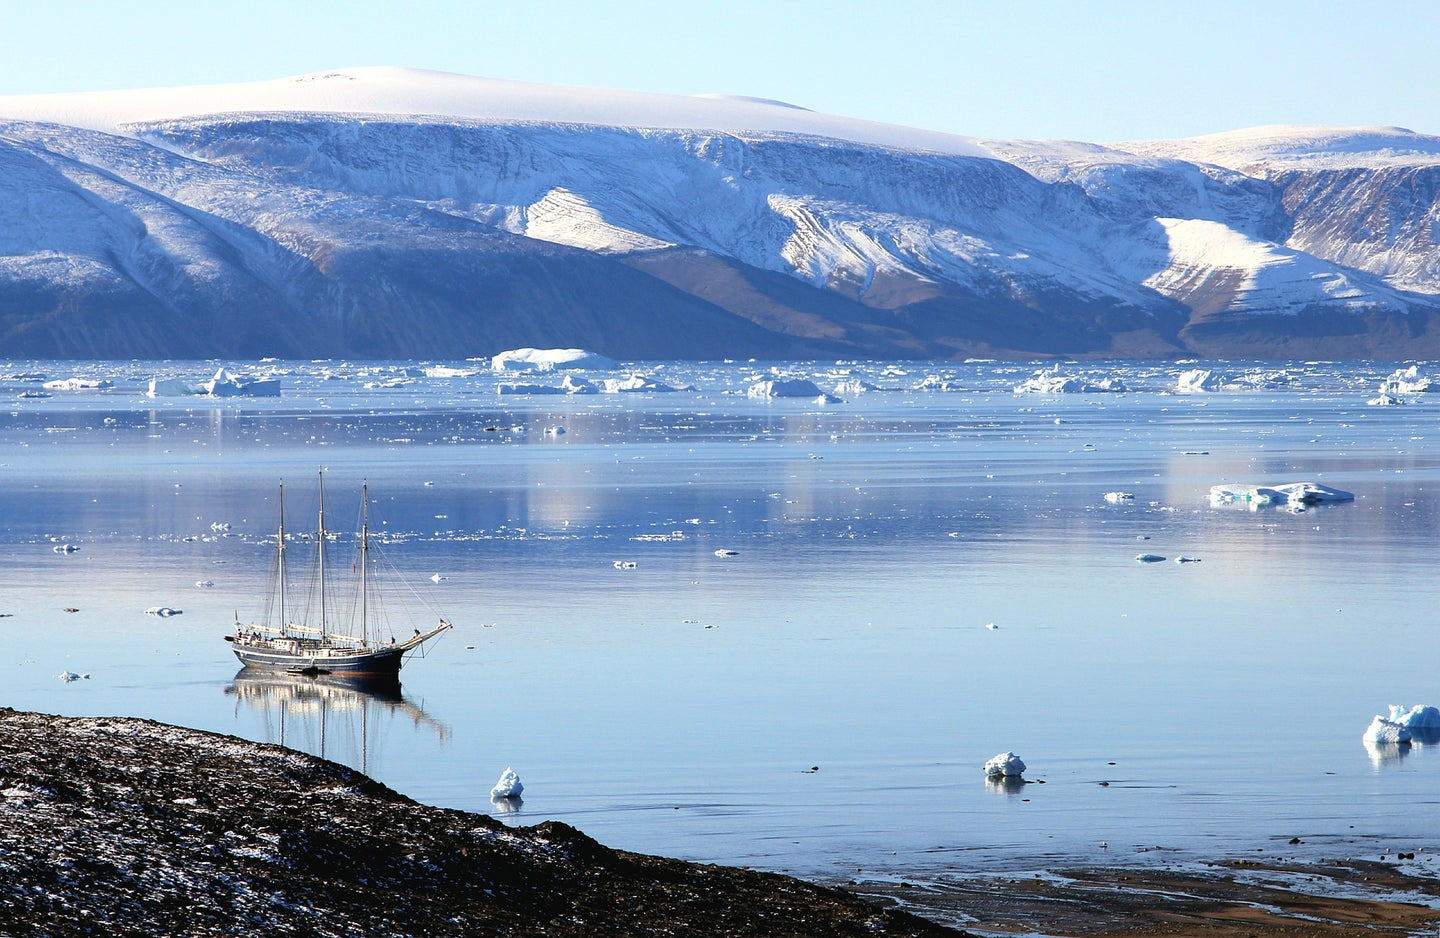 Greenland's ice sheet is melting faster than we thought and shows no signs of stopping